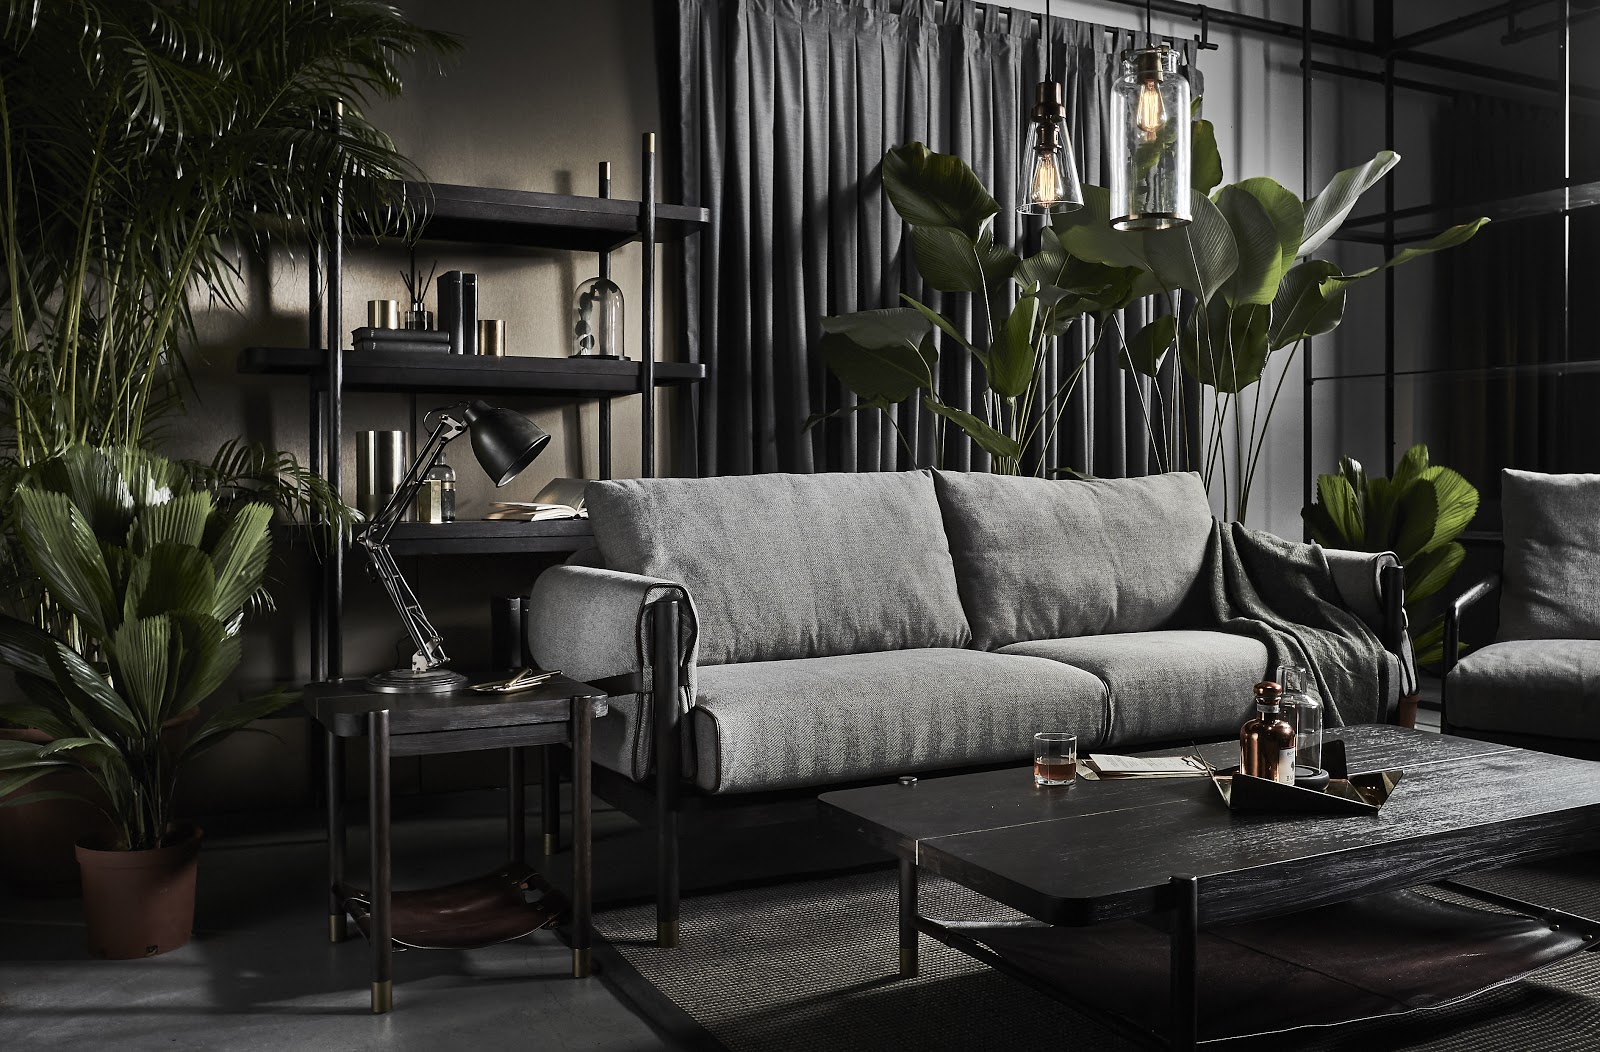 a grey sofa in a living room